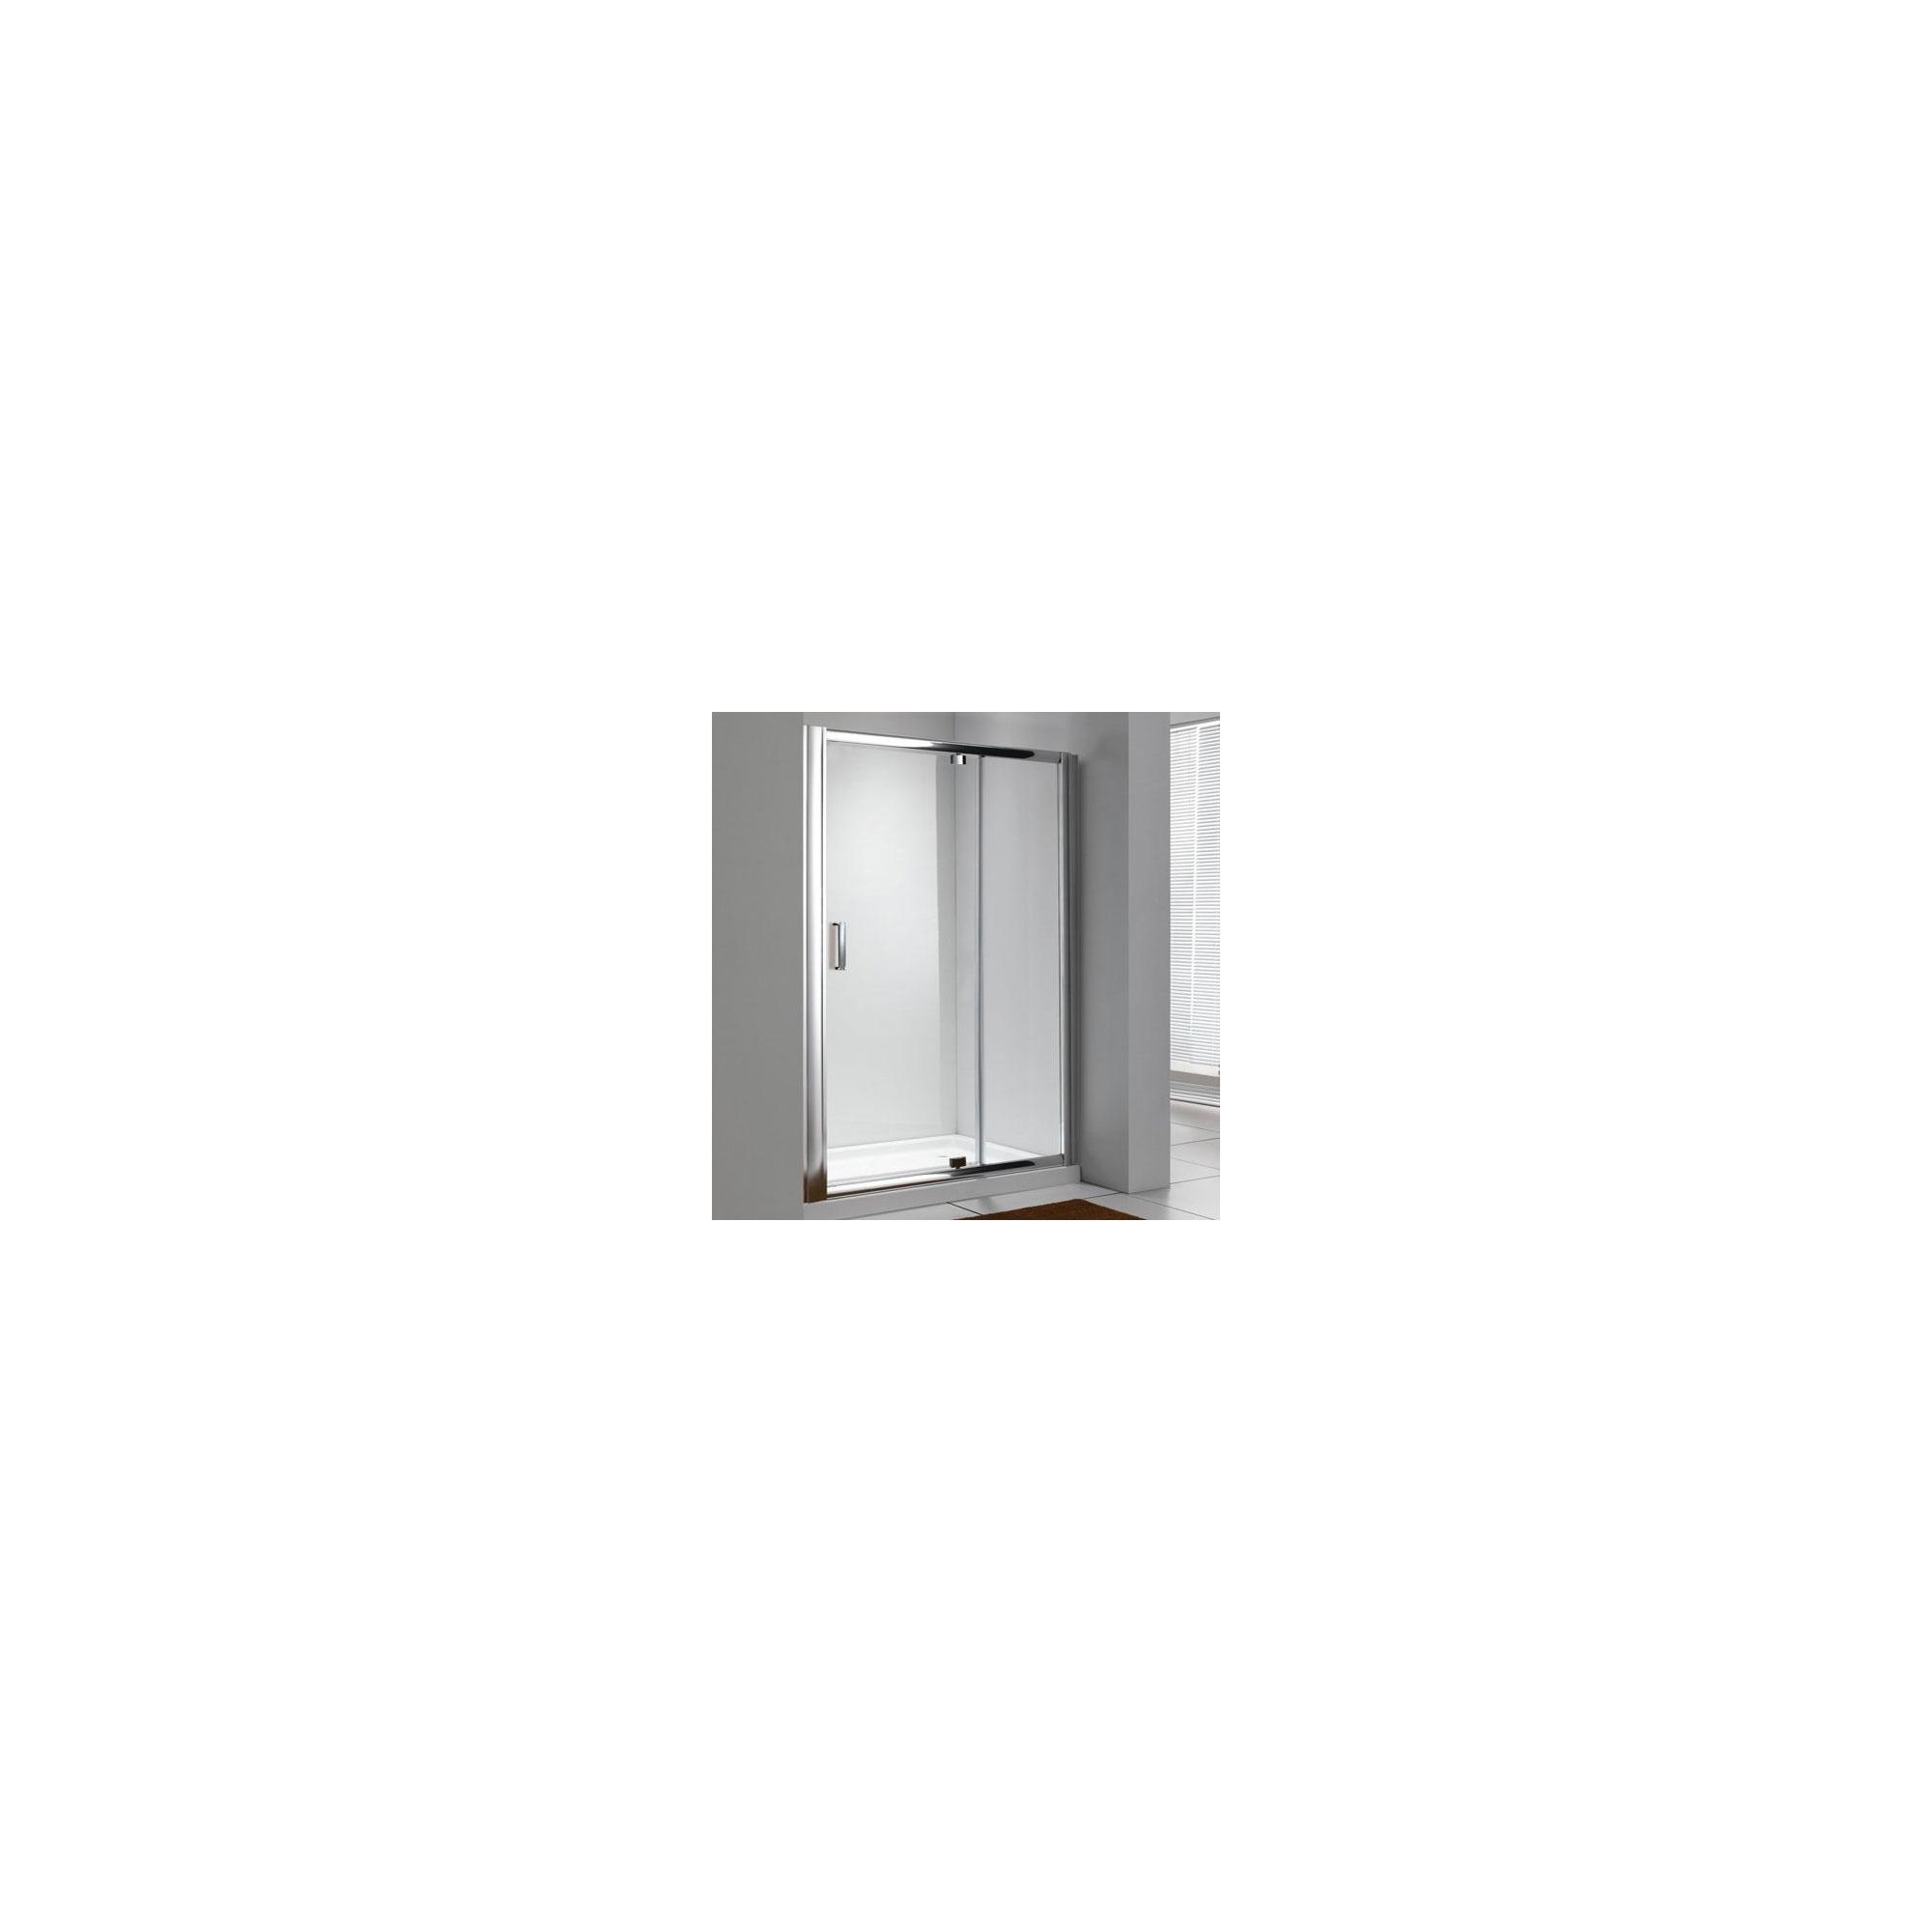 Duchy Style Pivot Door Shower Enclosure, 1200mm x 800mm, 6mm Glass, Low Profile Tray at Tesco Direct